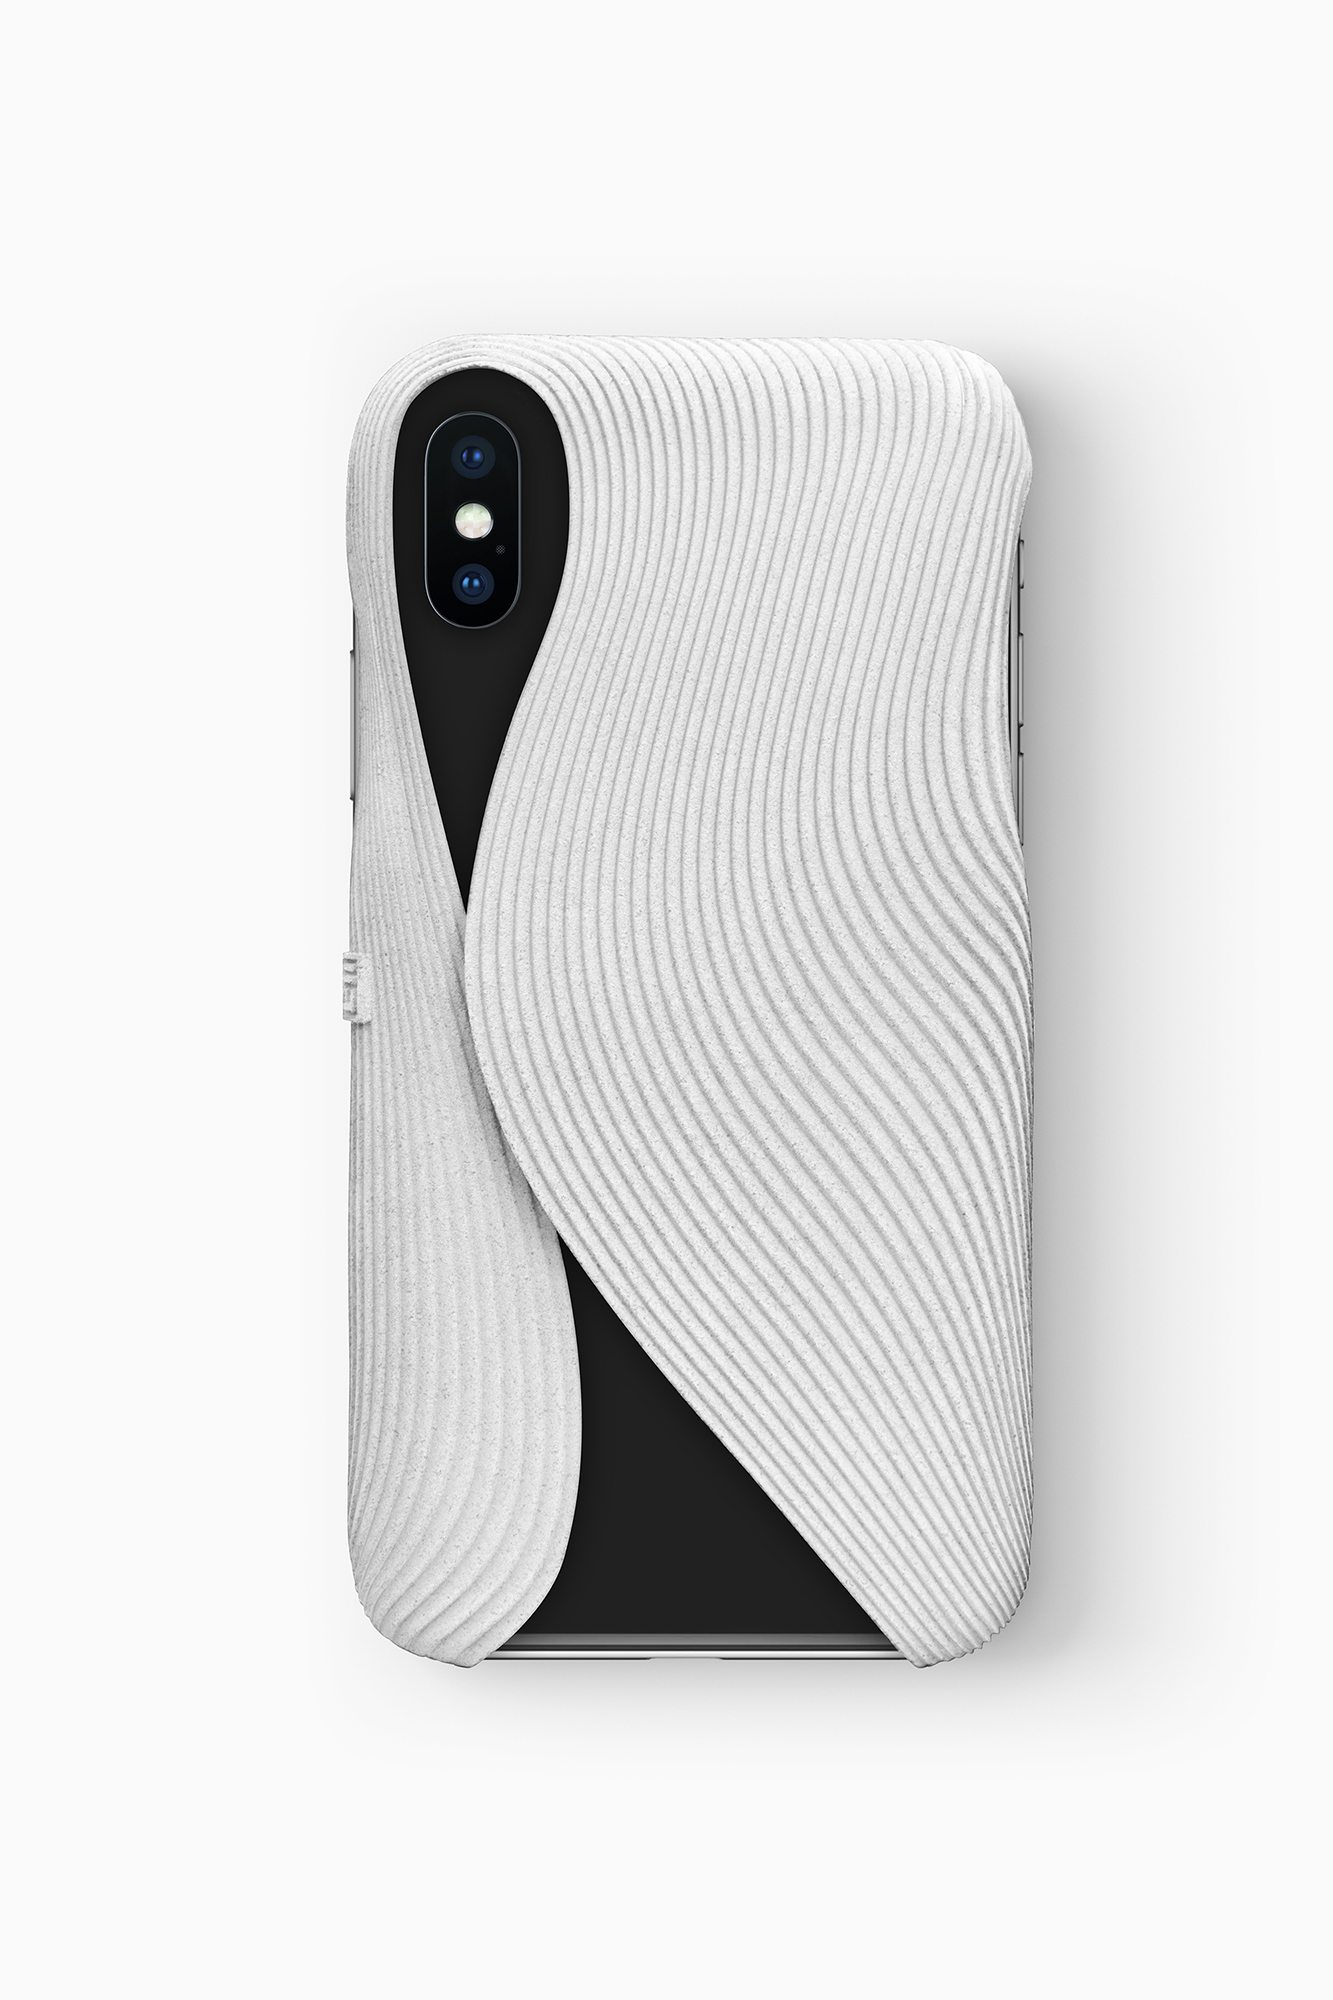 FOLD Case for iPhone X in white, Design by Matthijs Kok for Freshfiber